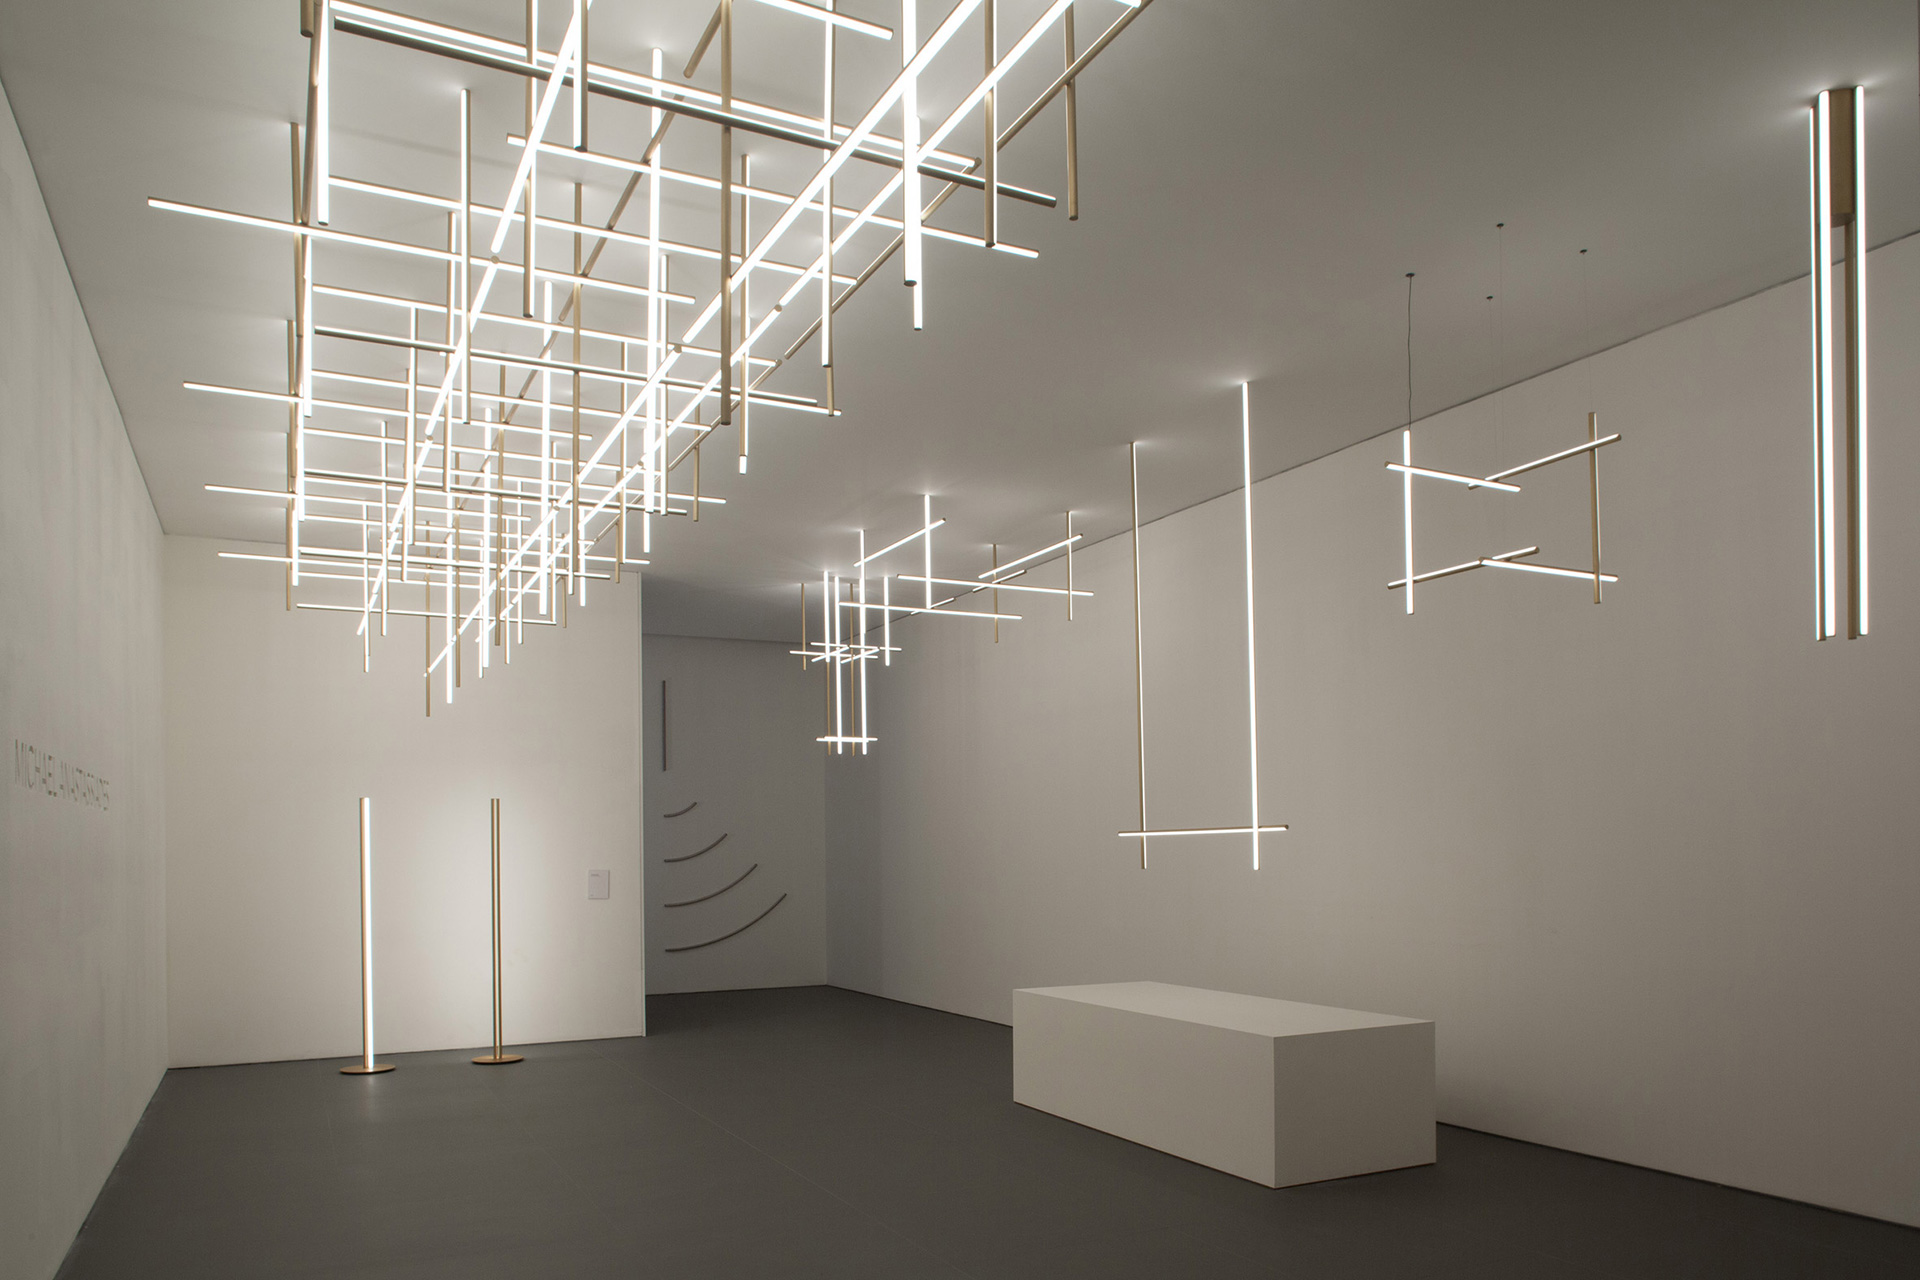 Coordinates – horizontal and vertical strip lights across the ceilings; by Michael Anastassiades | Cross Border Conversations | Michael Anastassiades, Seema Puri Mullan | STIR